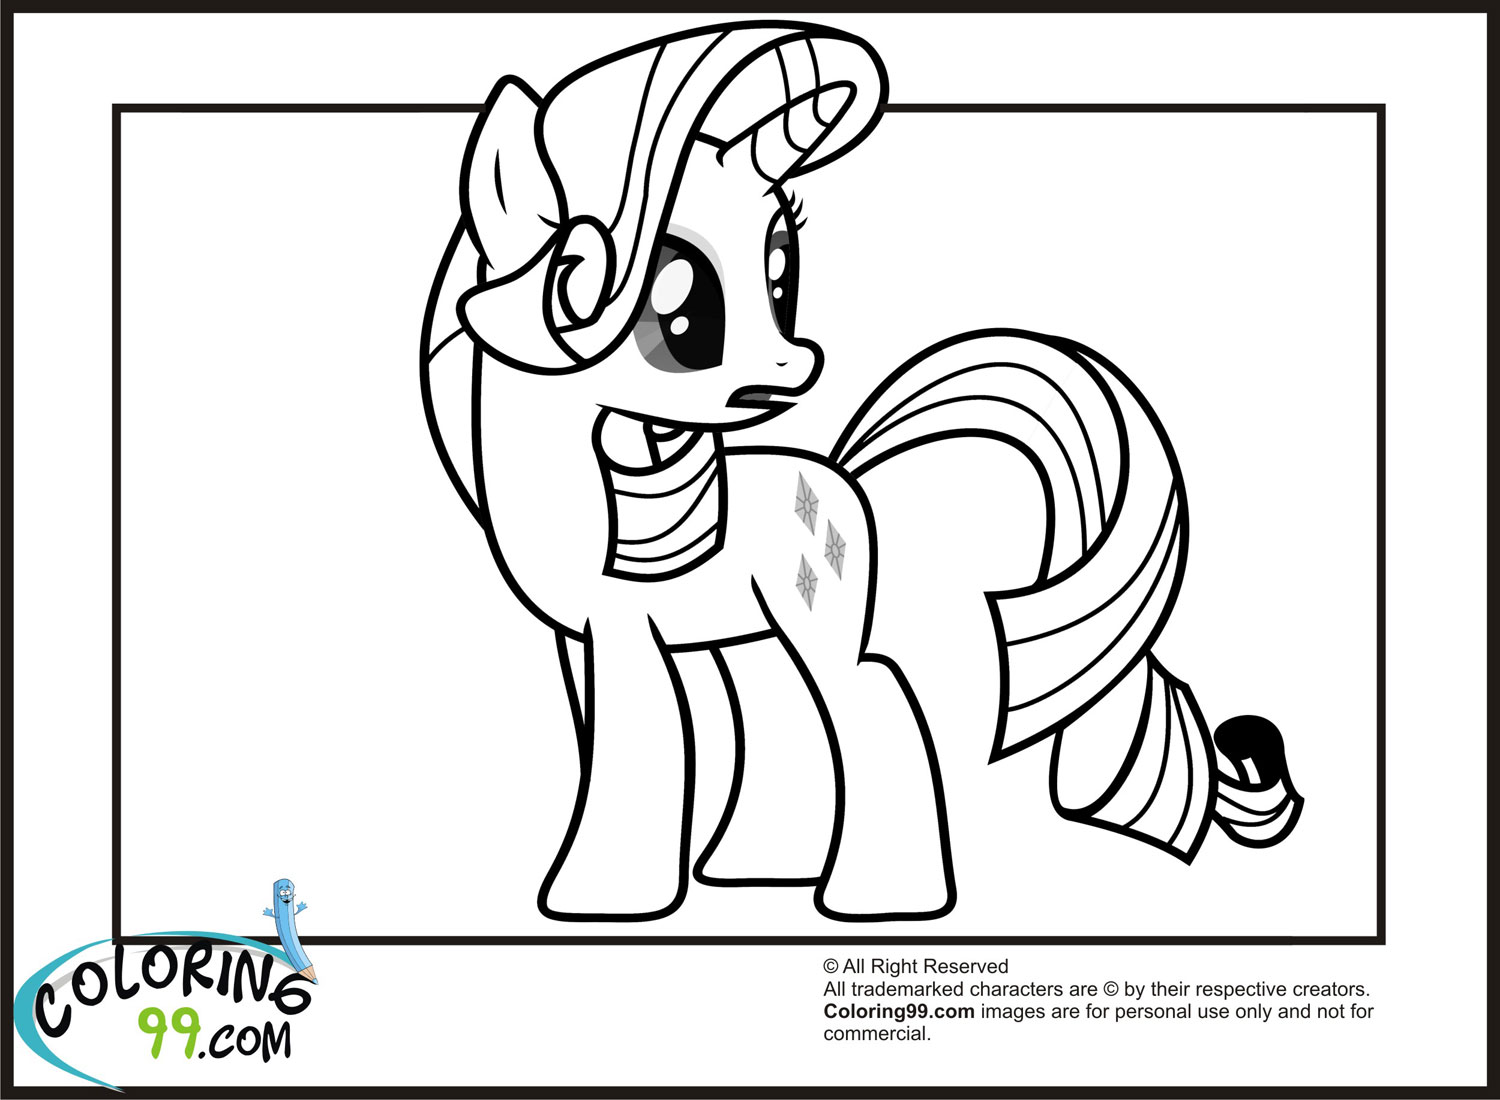 My little pony coloring pages rarity in dress - My Little Pony Coloring Pages Rarity In Dress 11